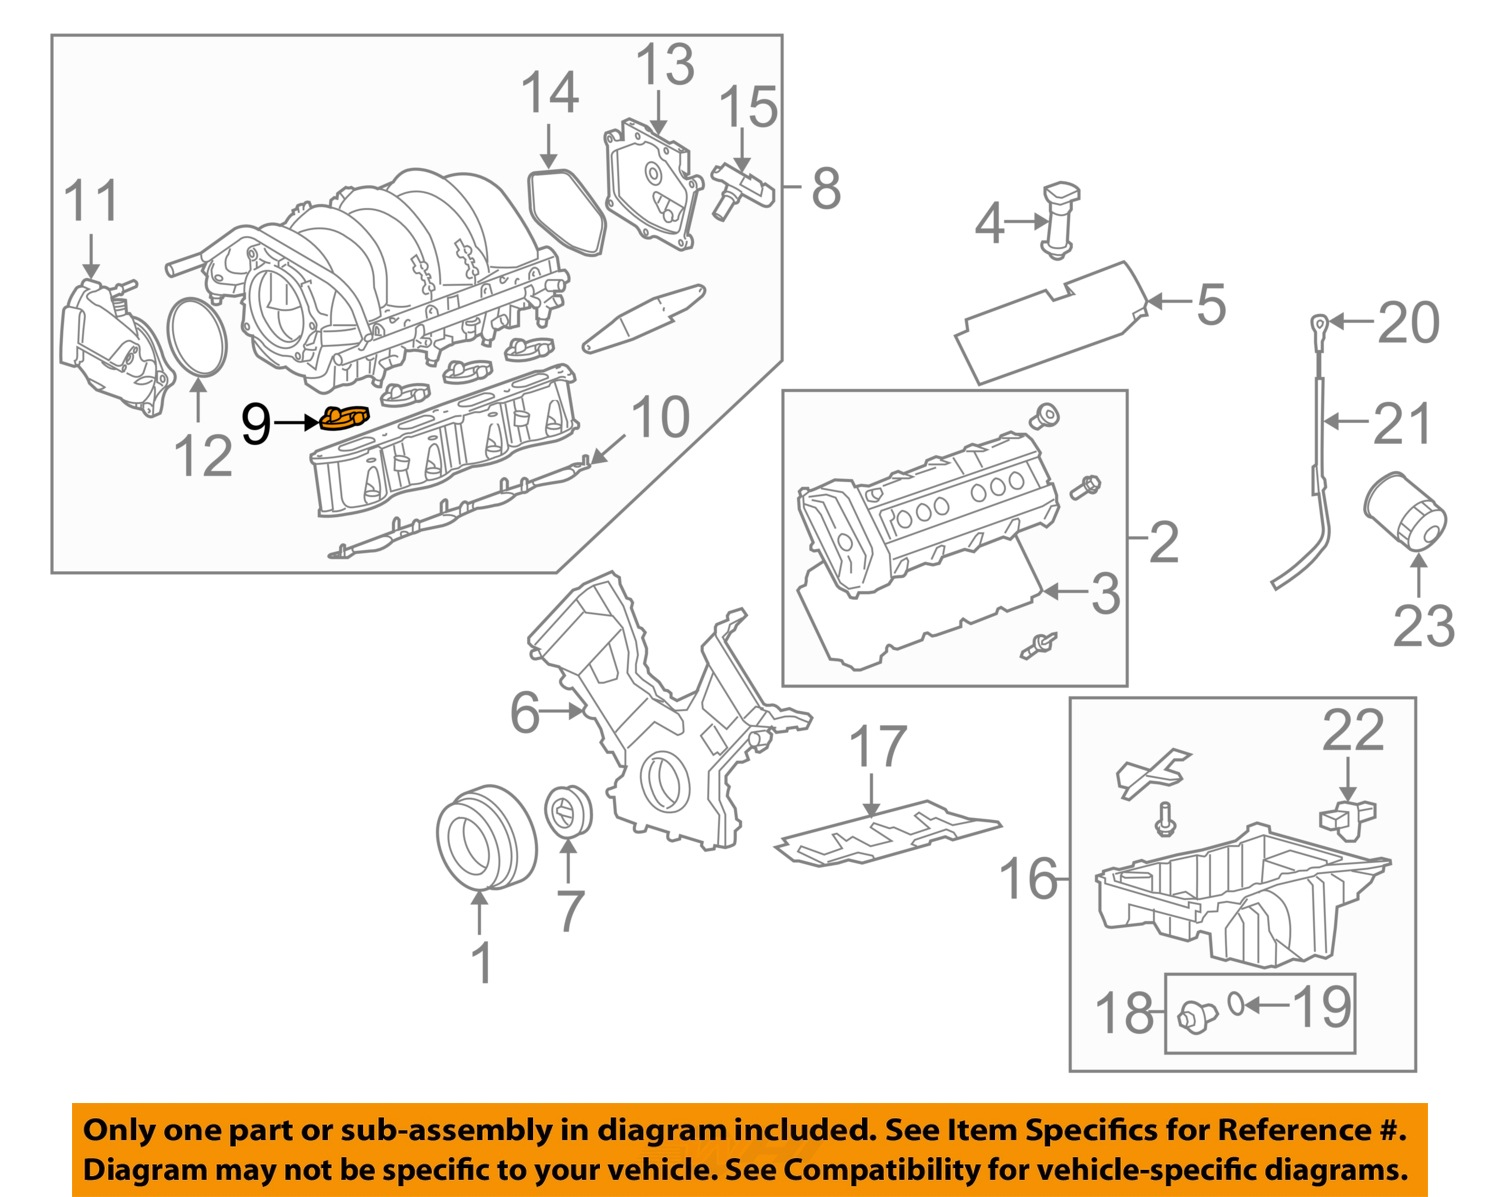 2006 range rover engine diagram car fuse box wiring diagram u2022 rh suntse de